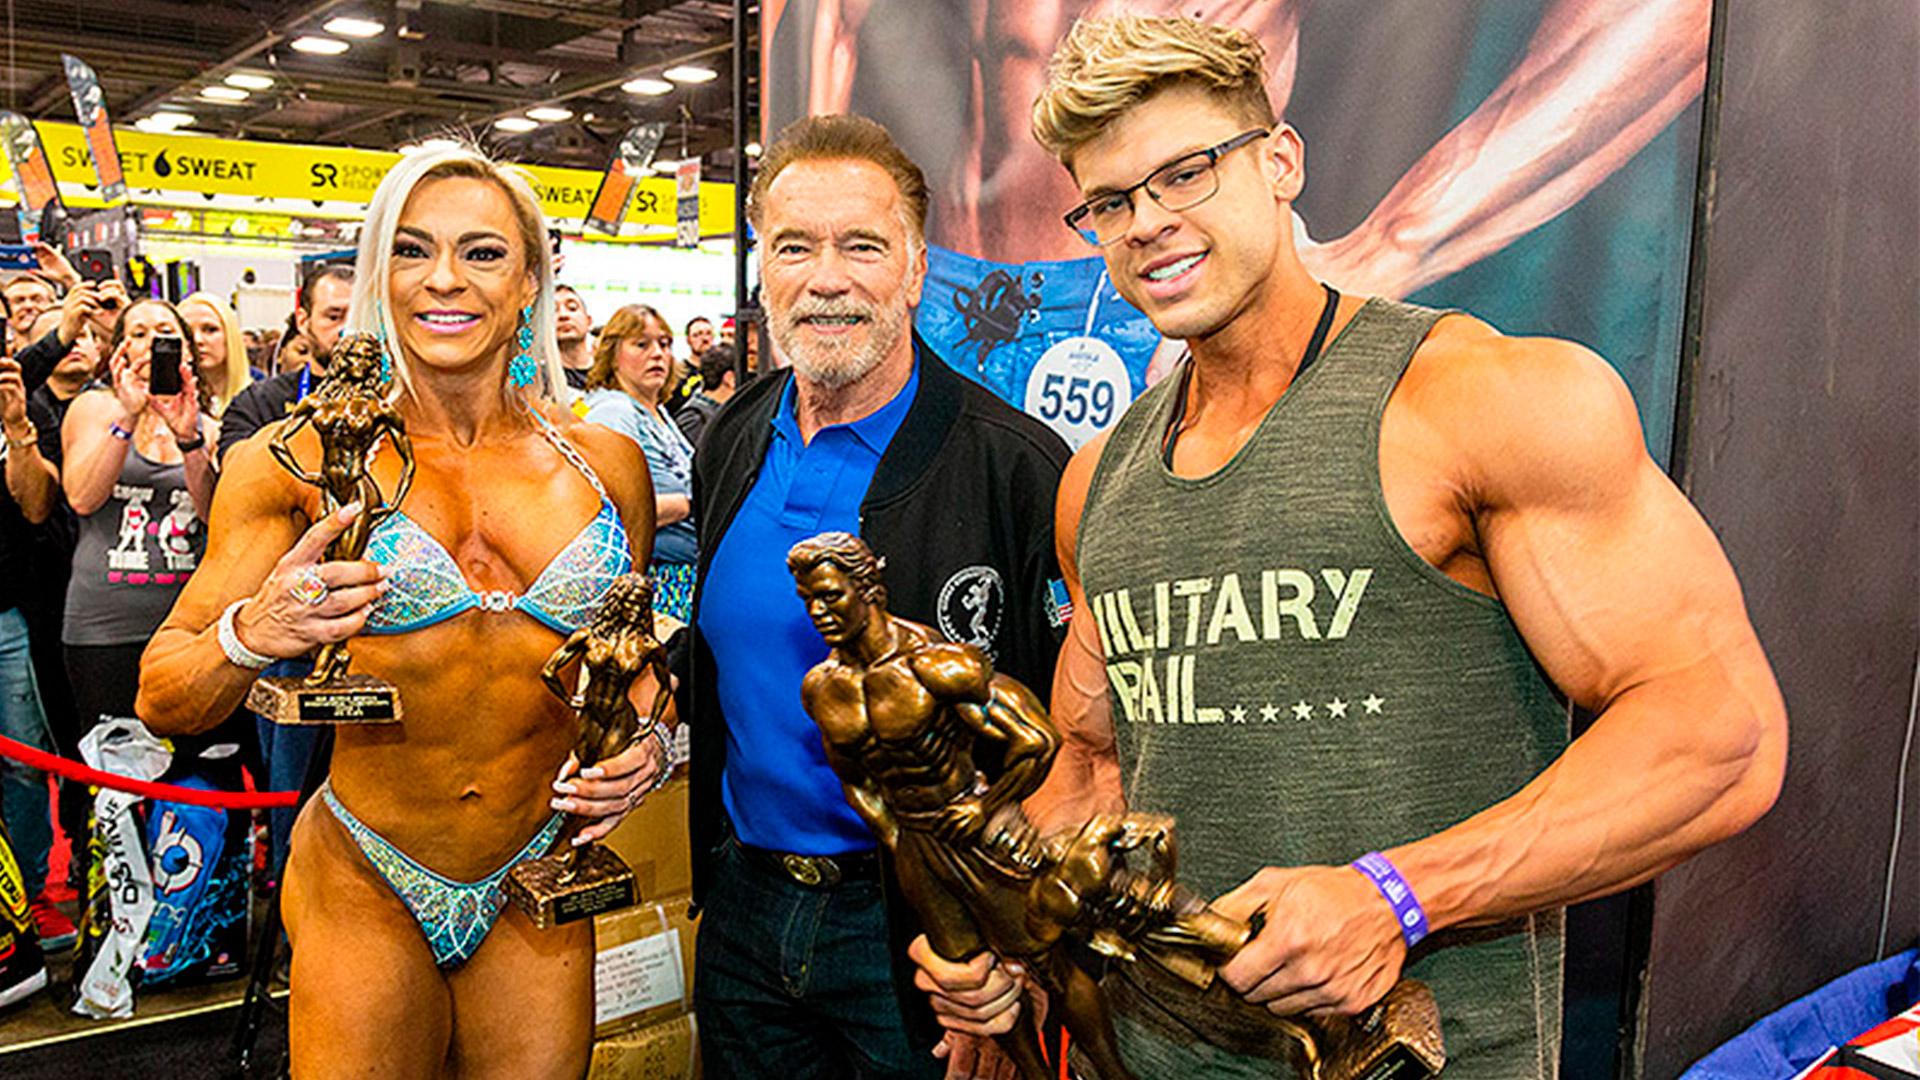 Midway patrocina o Arnold Classic Ohio